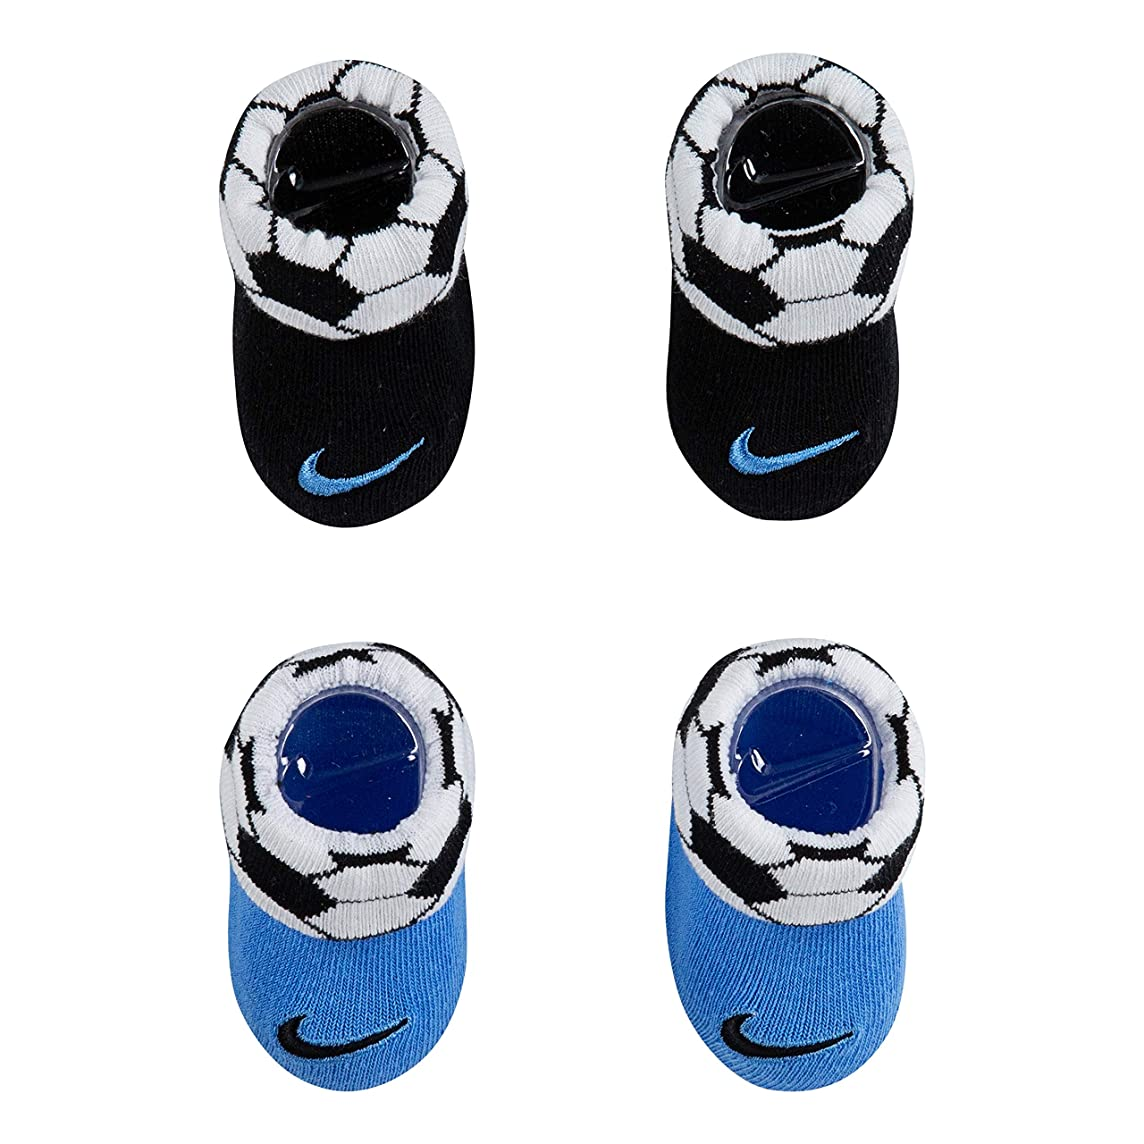 NIKE Children's Apparel Baby Bootie (2 Pack)